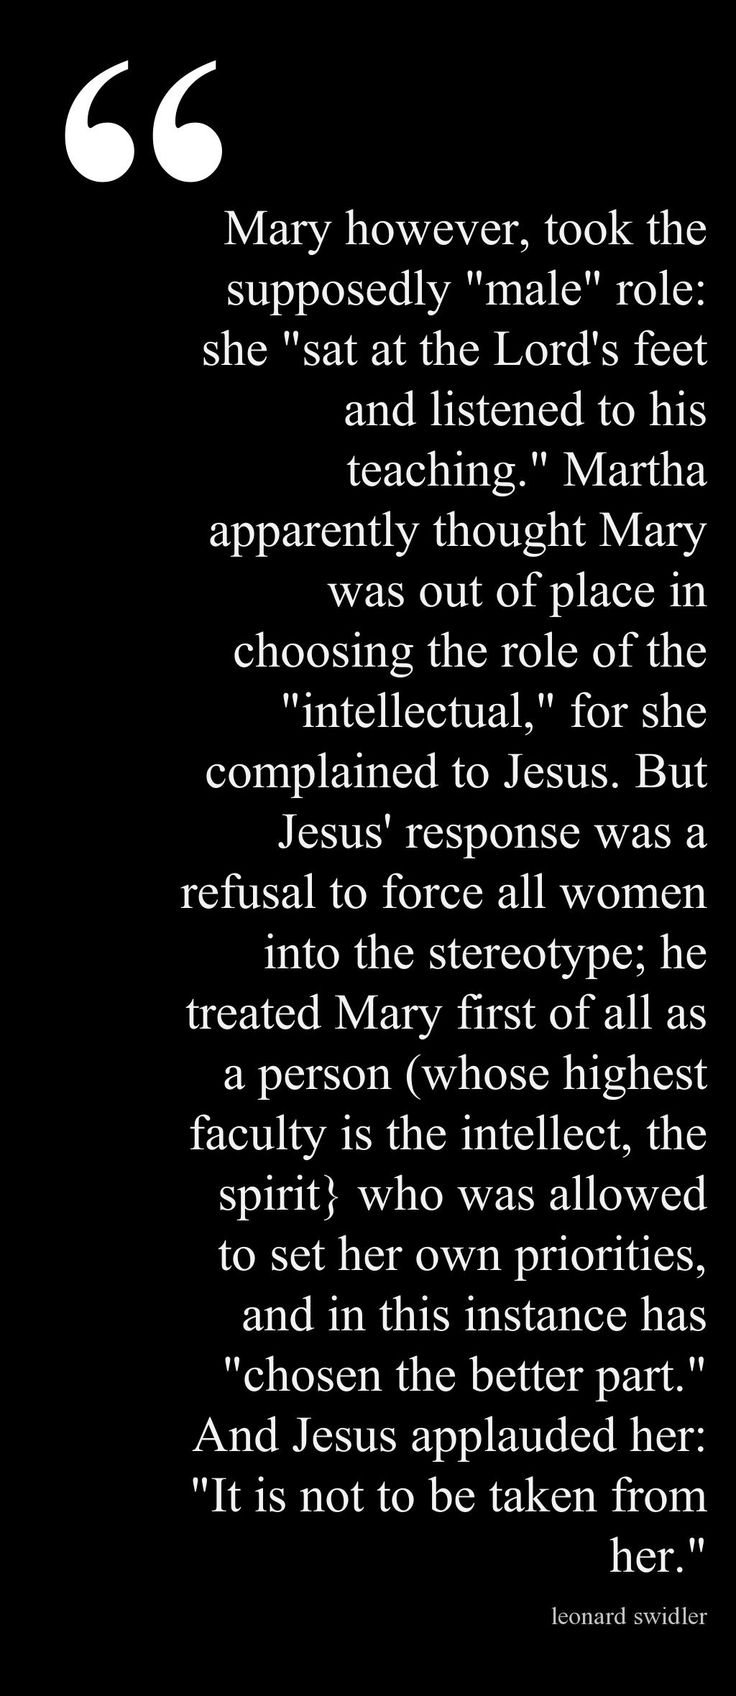 """JESUS WAS A FEMINIST by Leonard Swidler Luke 10:38-42 """"it is difficult to imagine how Jesus could possibly have been clearer in this insistence that women were called to the intellectual, the spiritual life just as were men."""""""